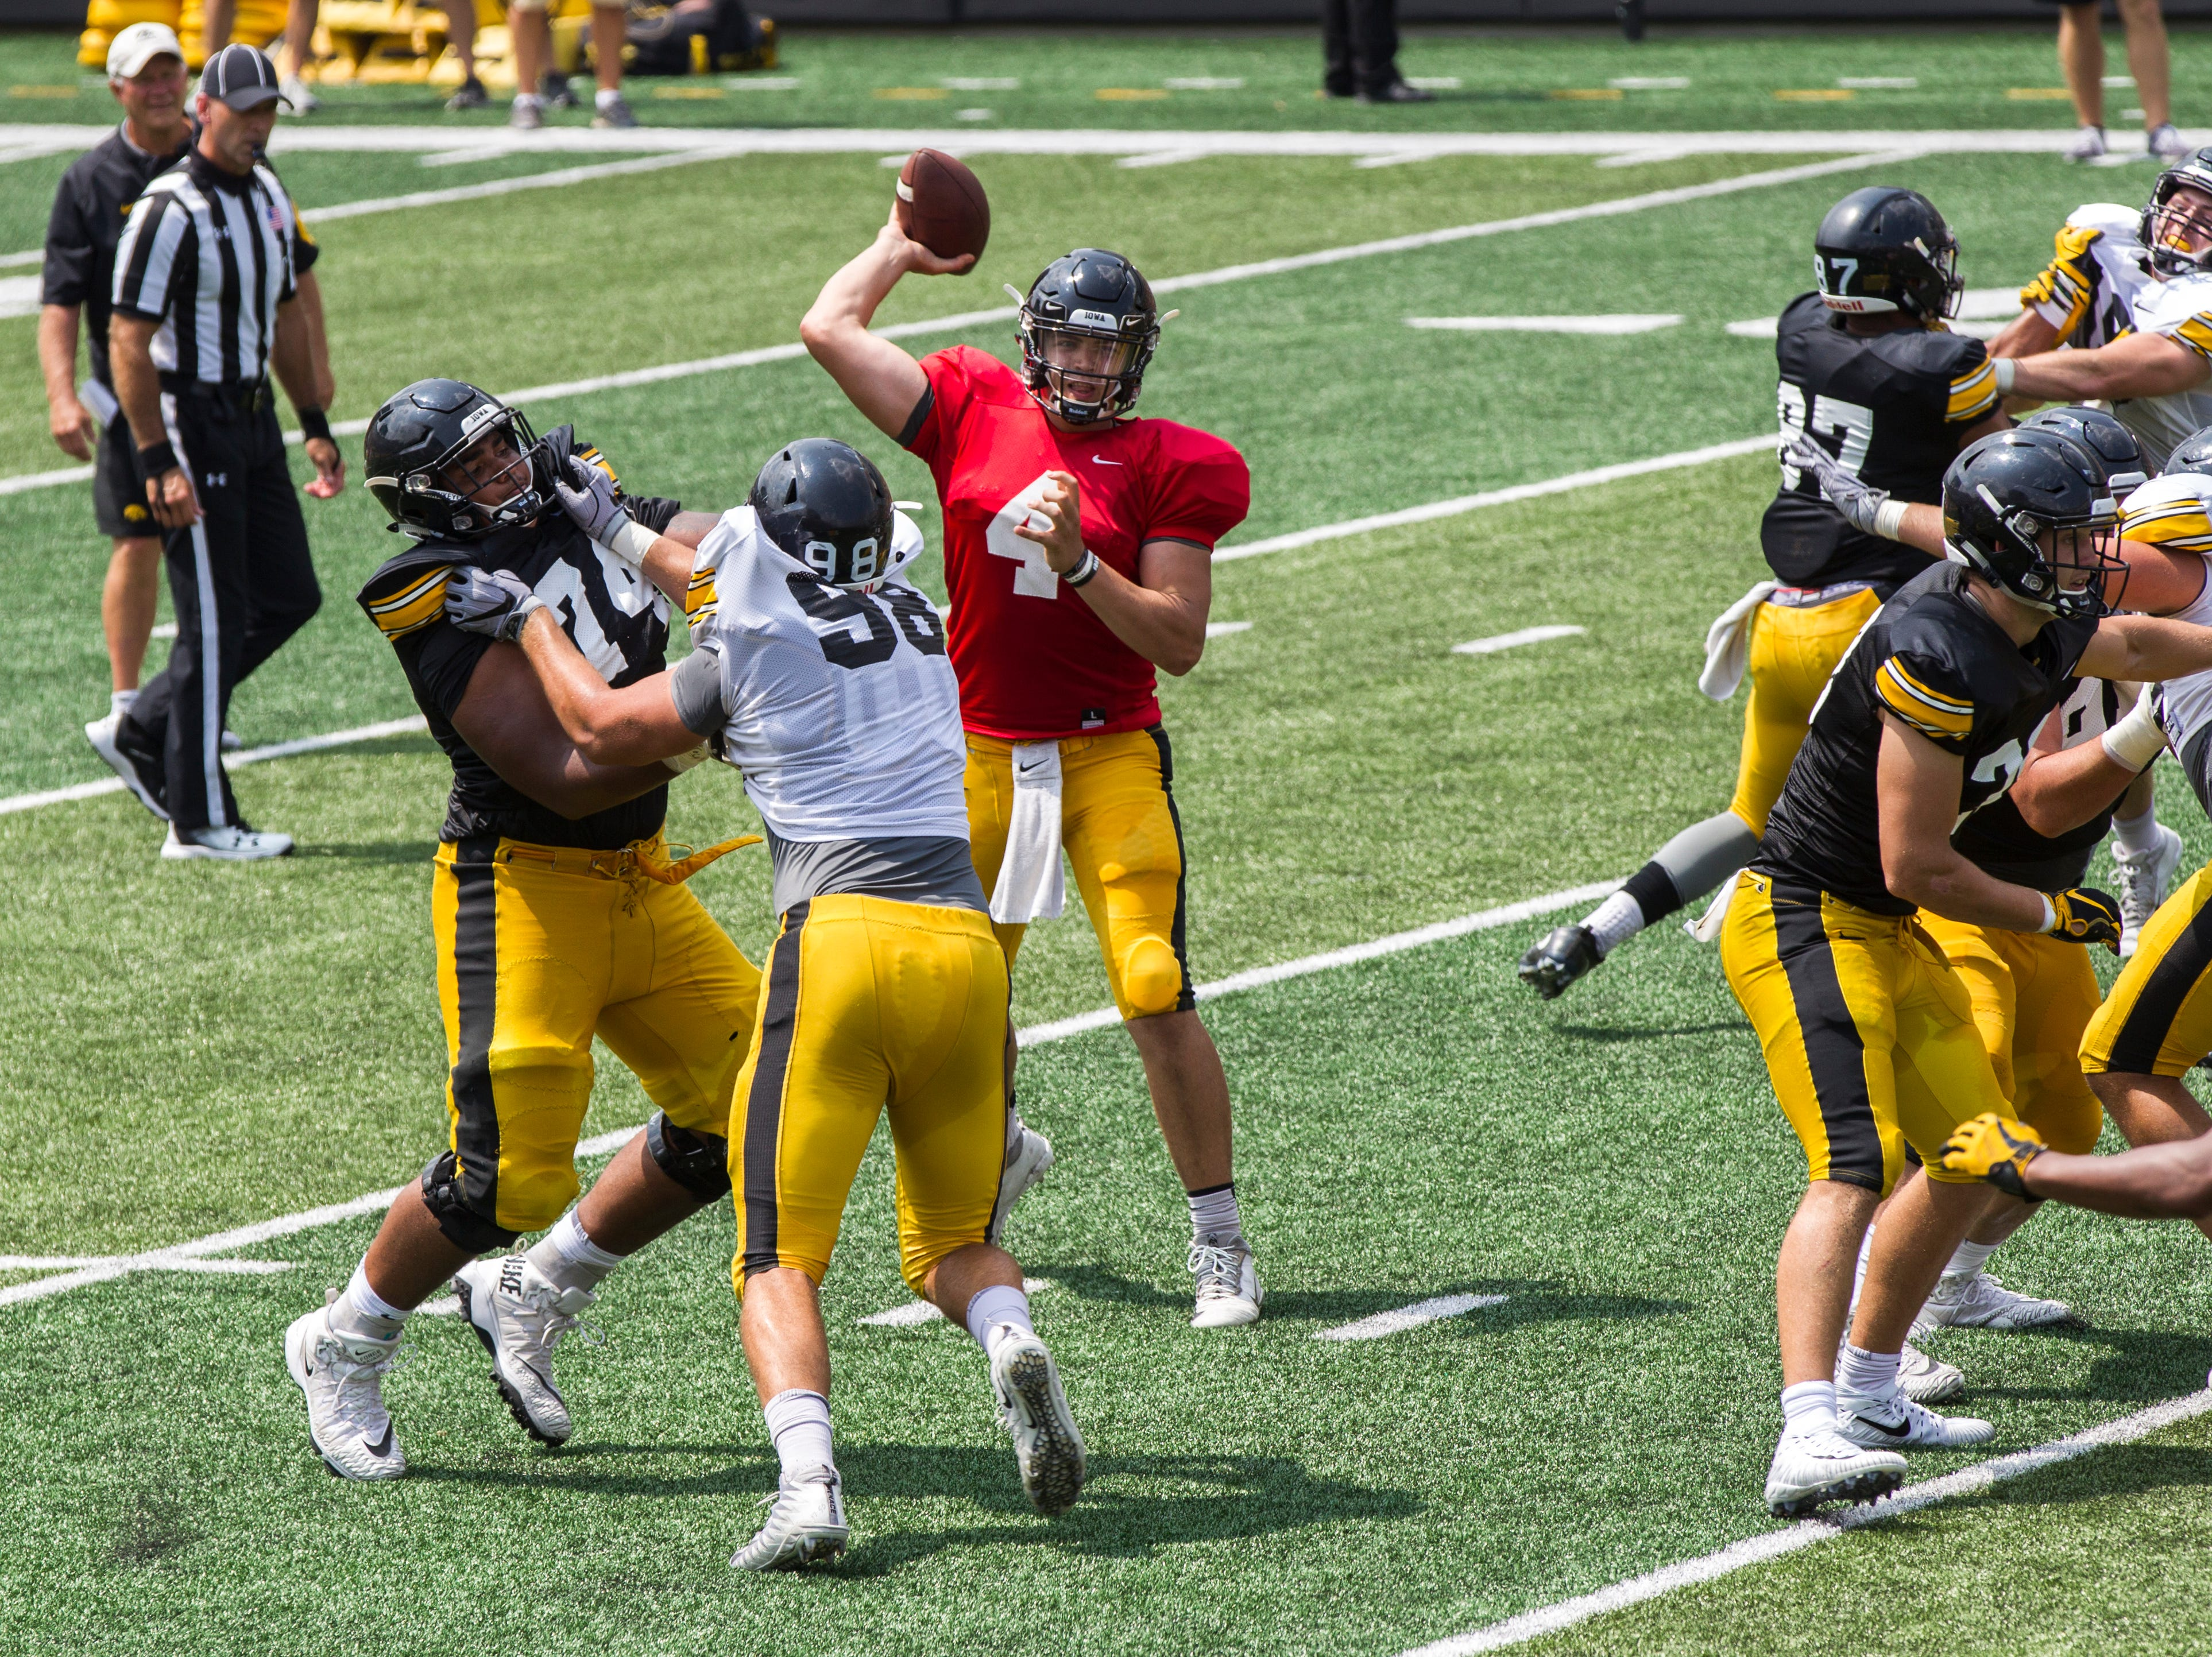 Iowa quarterback Nate Stanley (4) looks to pass while offensive lineman Tristan Wirfs (74) gets a block against Anthony Nelson (98) during a Kids Day practice on Saturday, Aug. 11, 2018, at Kinnick Stadium in Iowa City.